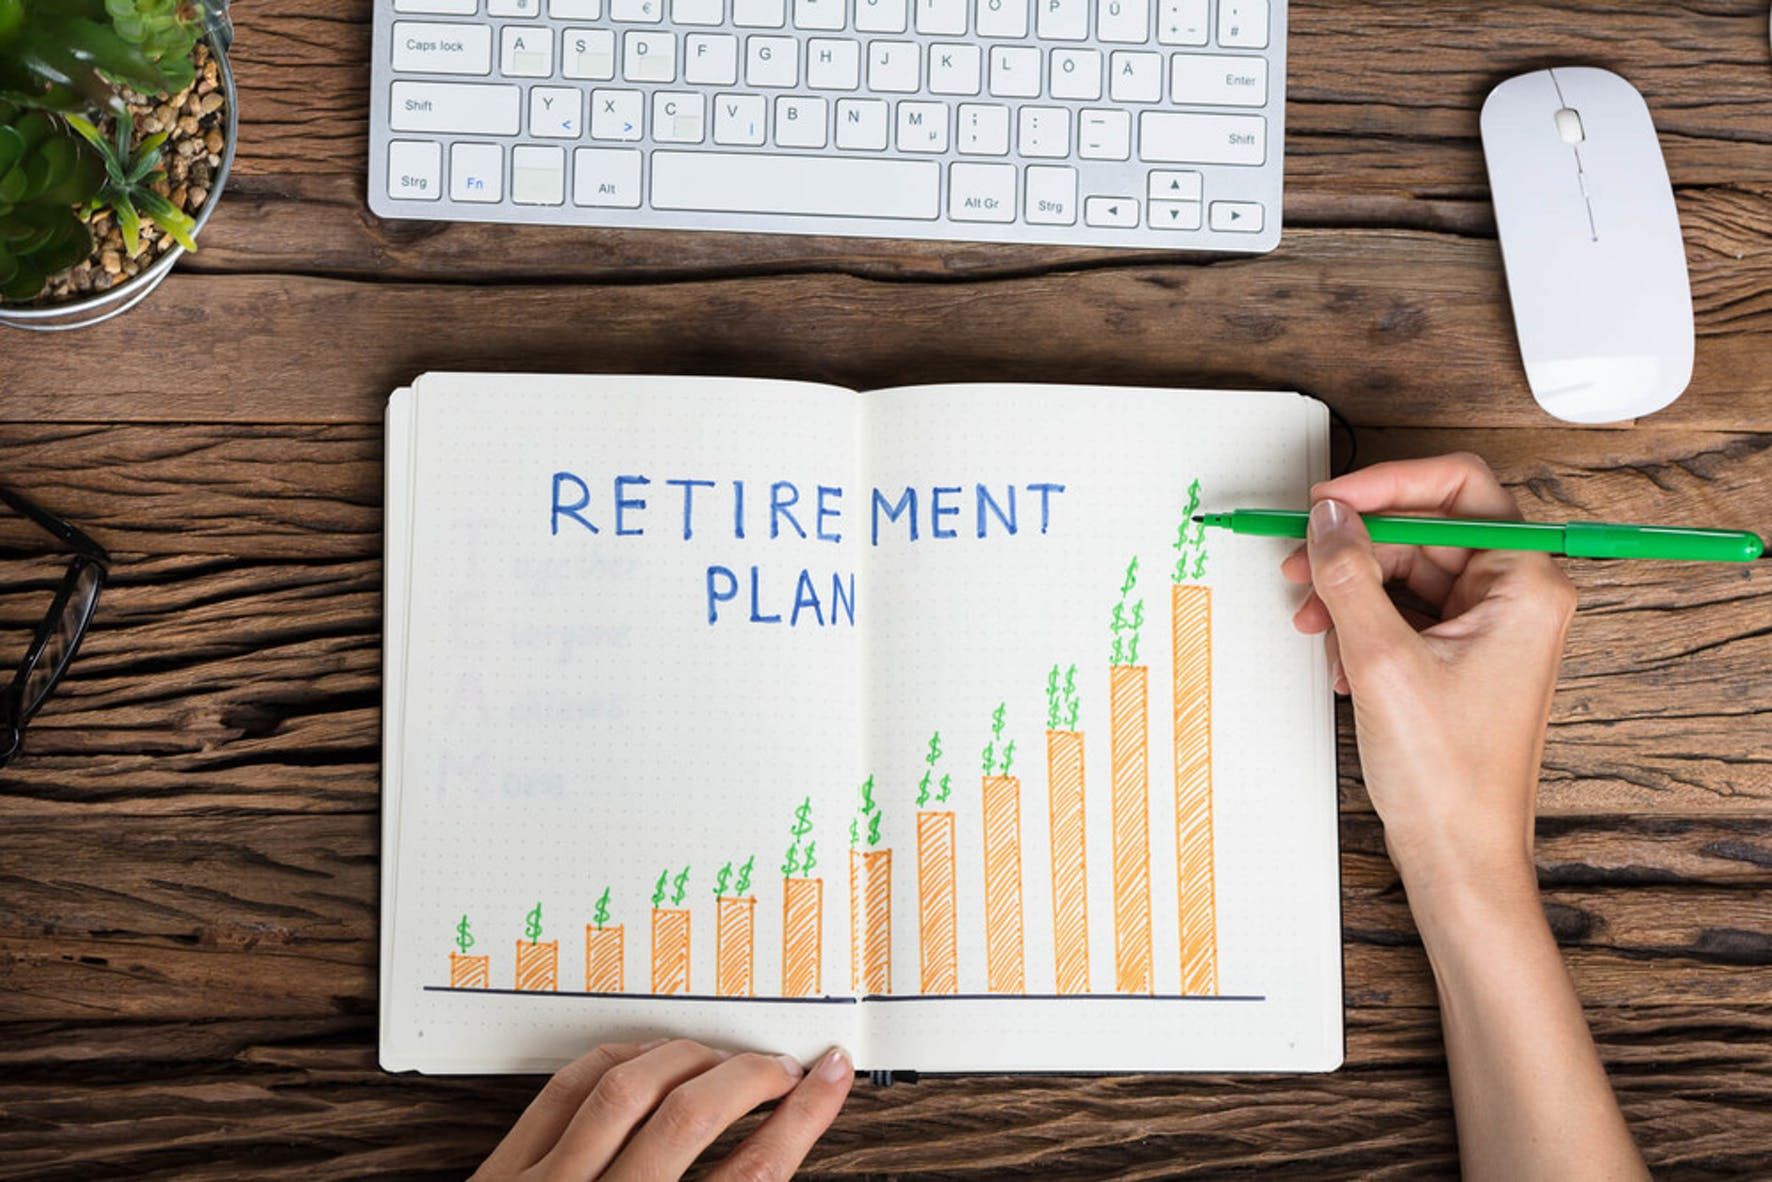 Retirement plan chart - save for retirement